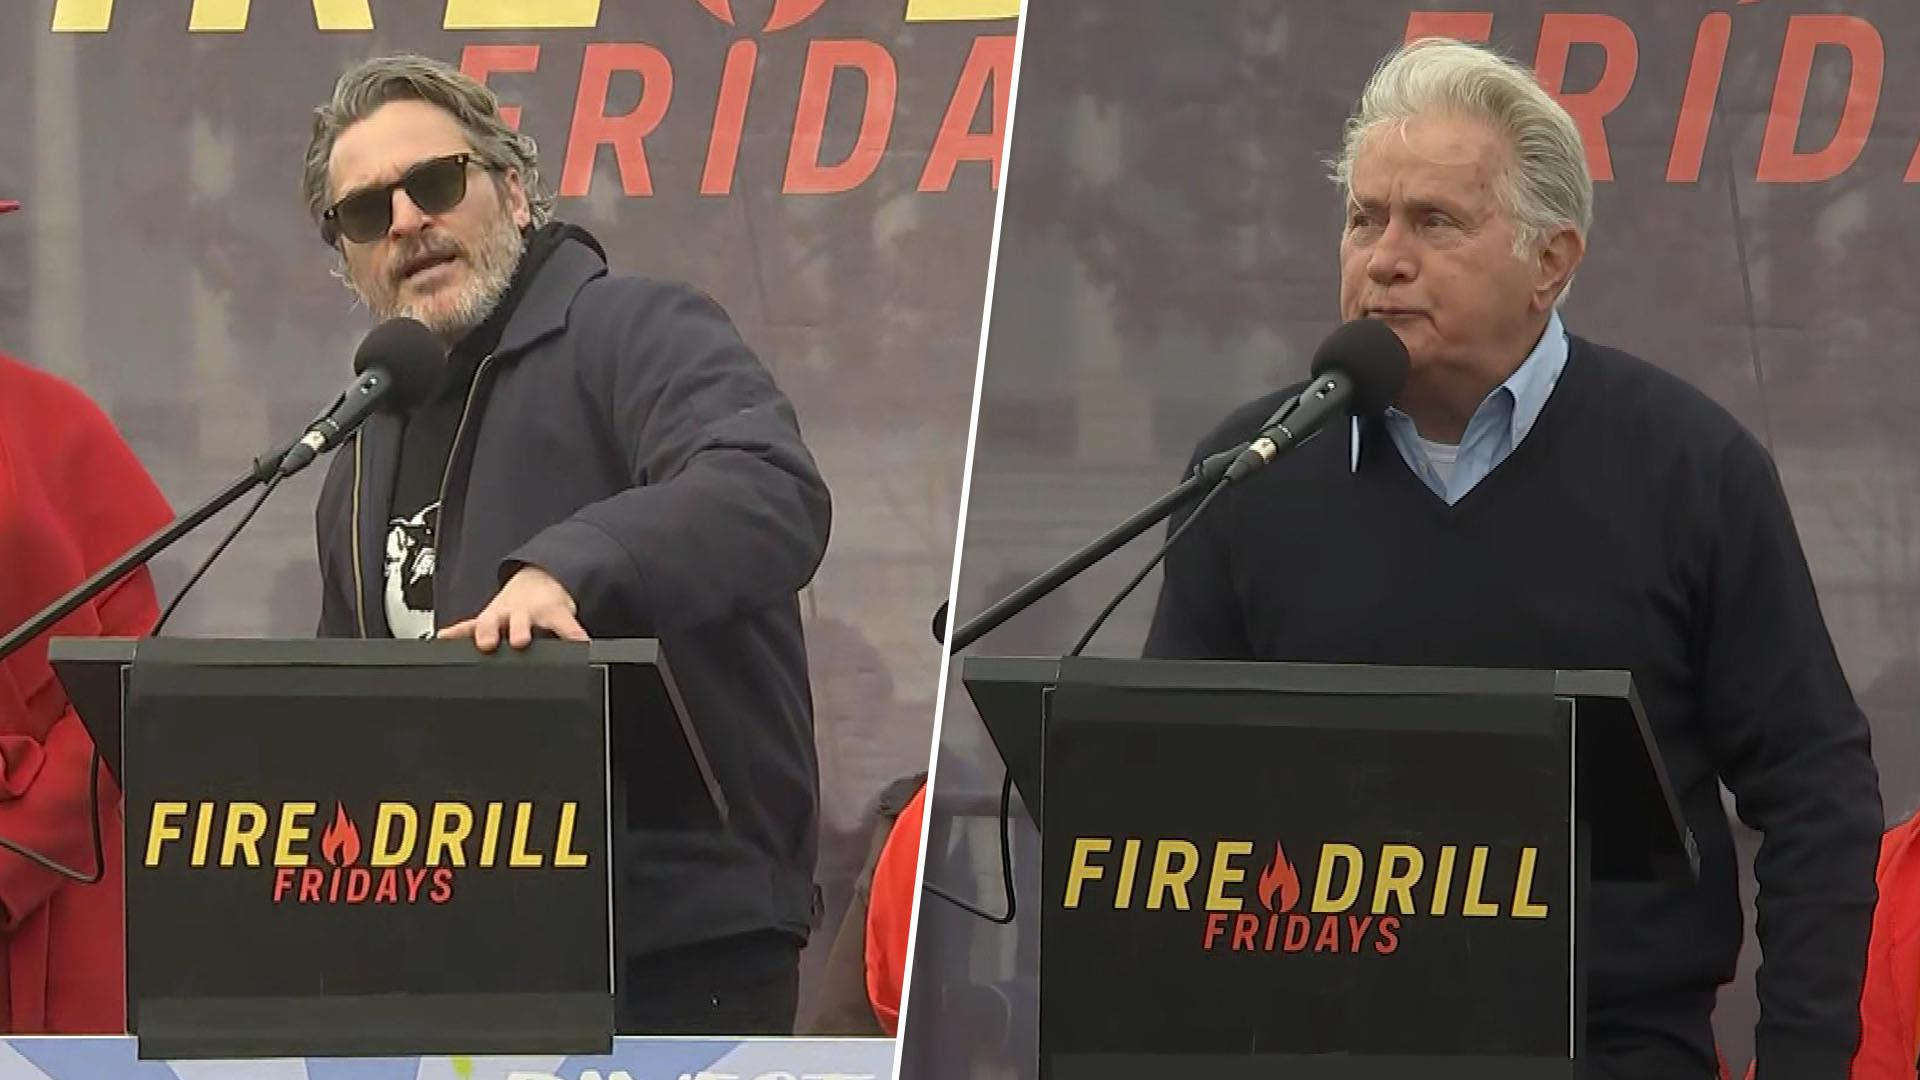 Joaquin Phoenix and Martin Sheen arrested in star-studded climate change protest on Capitol Hill